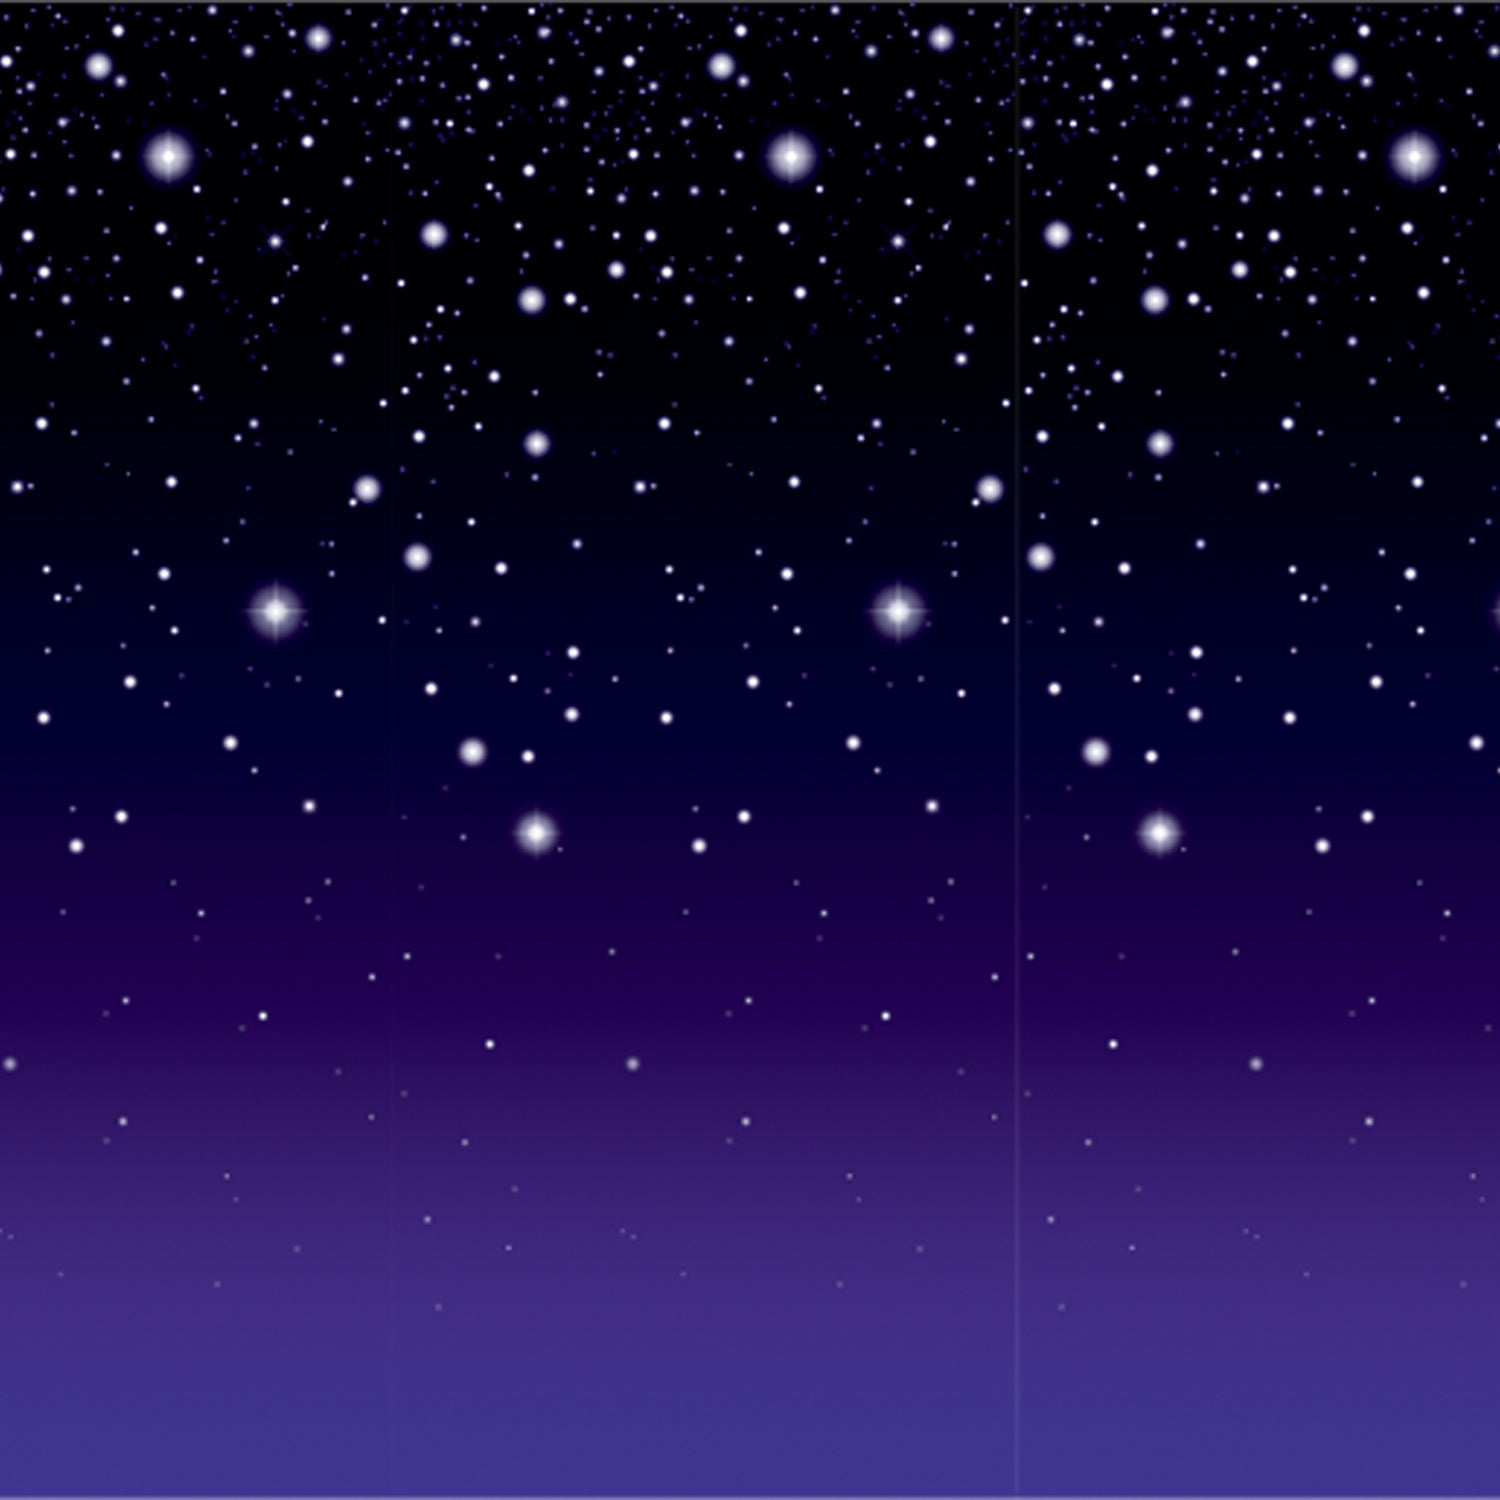 Starry Night Backdrop by Beistle - Awards Night Theme Decorations